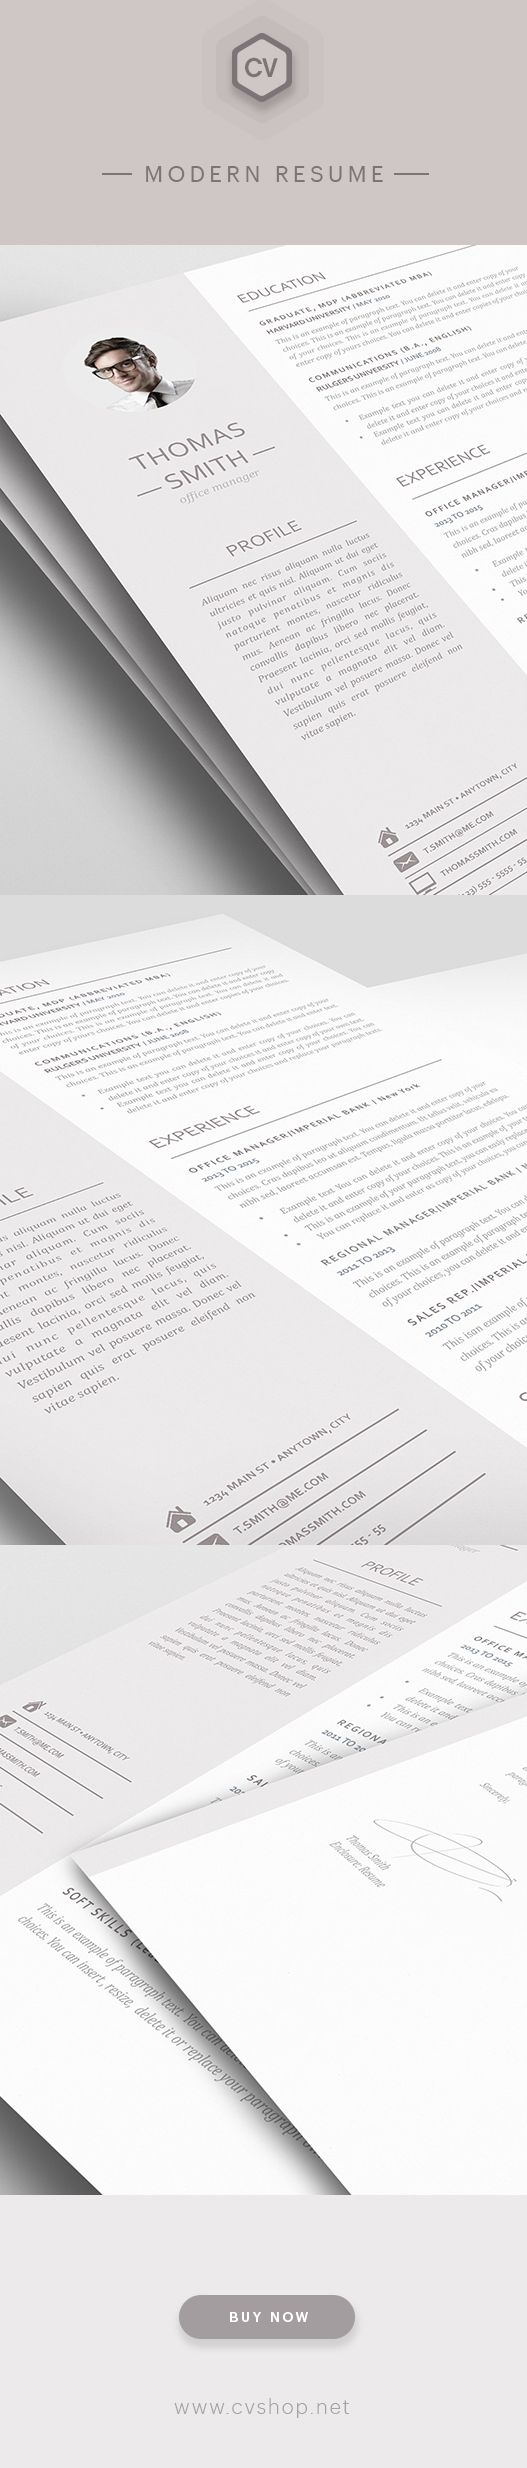 108 best ms word resume templates images on pinterest cv design